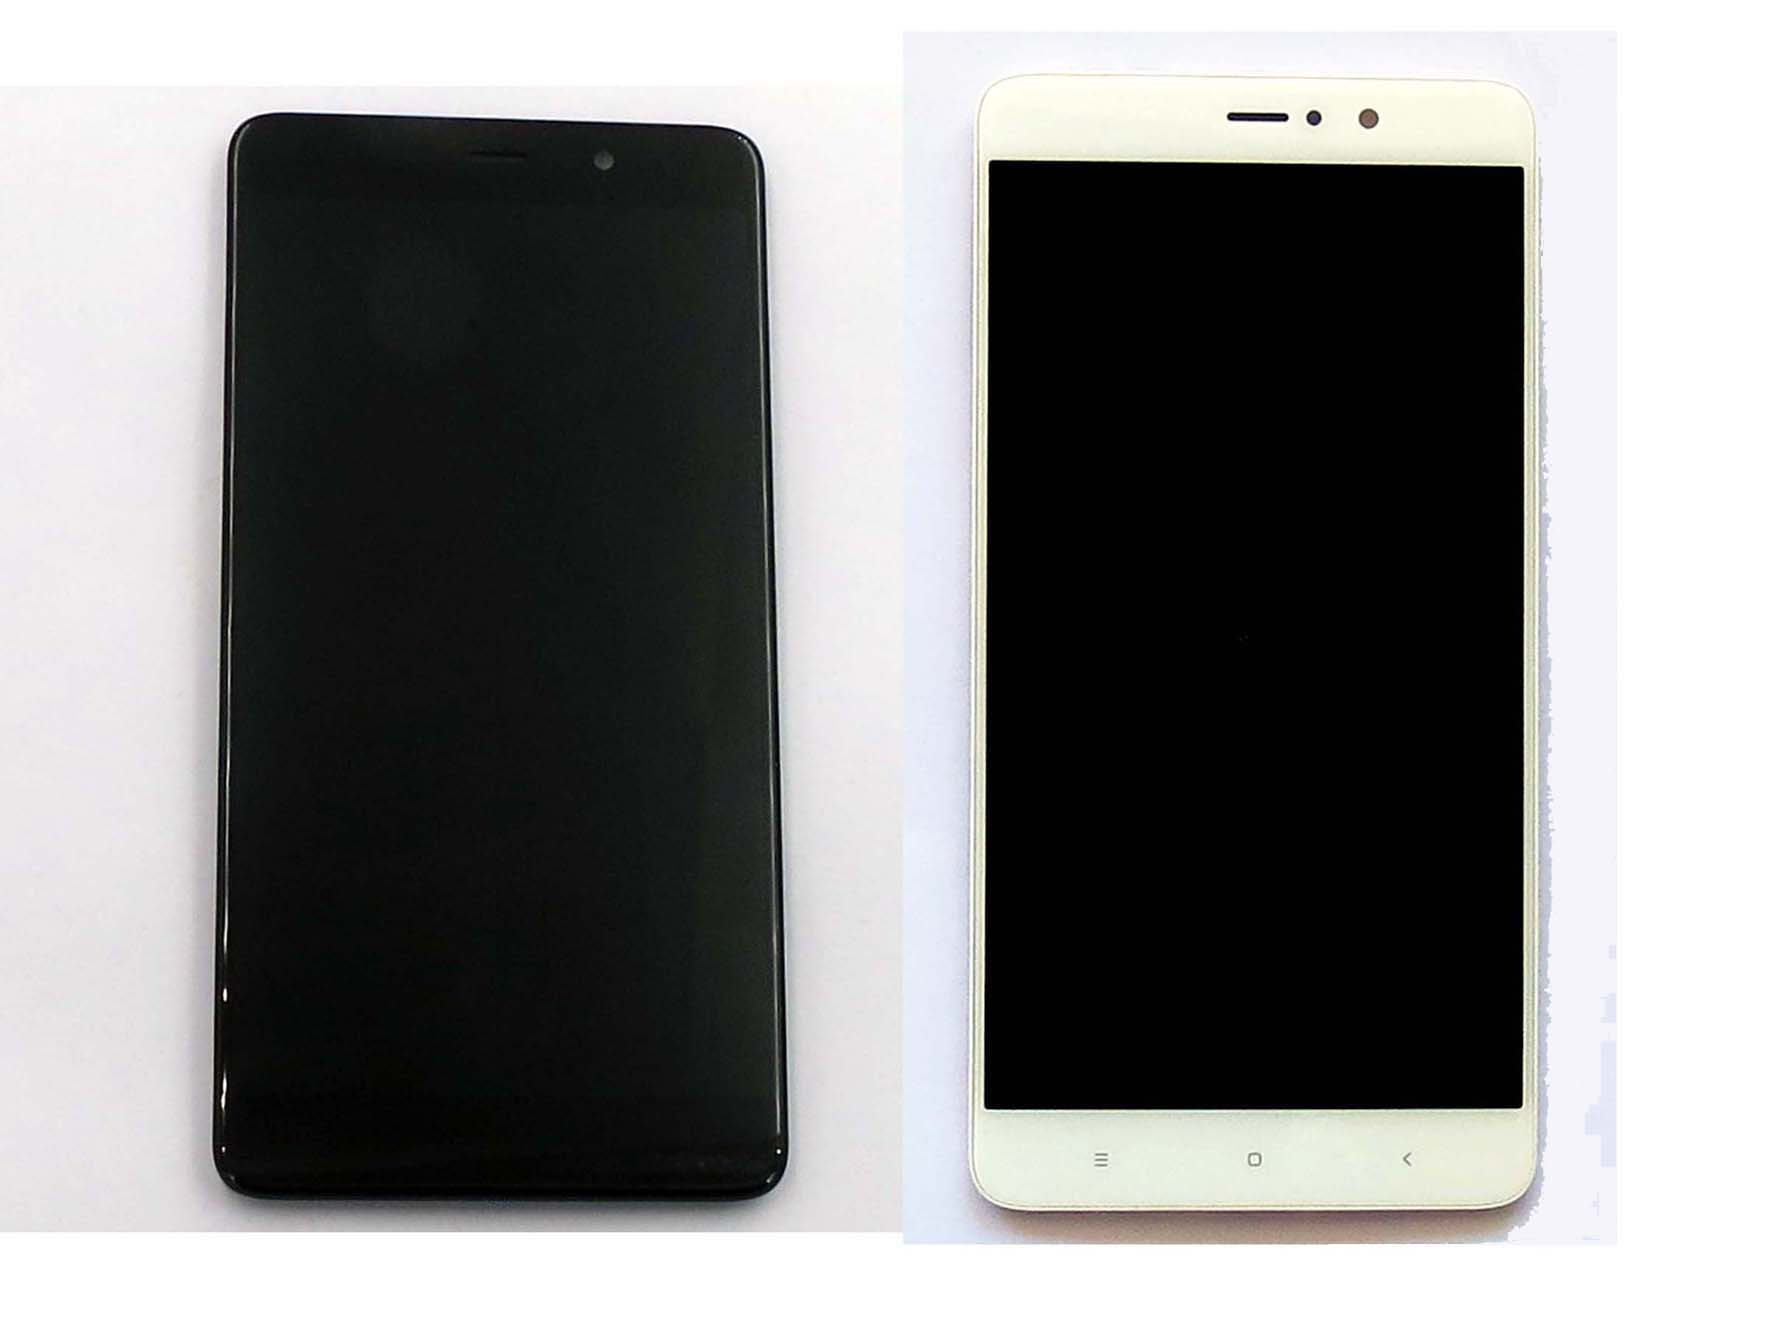 Original Complete screen with front housing for xiaomi 5s Plus - Black & White